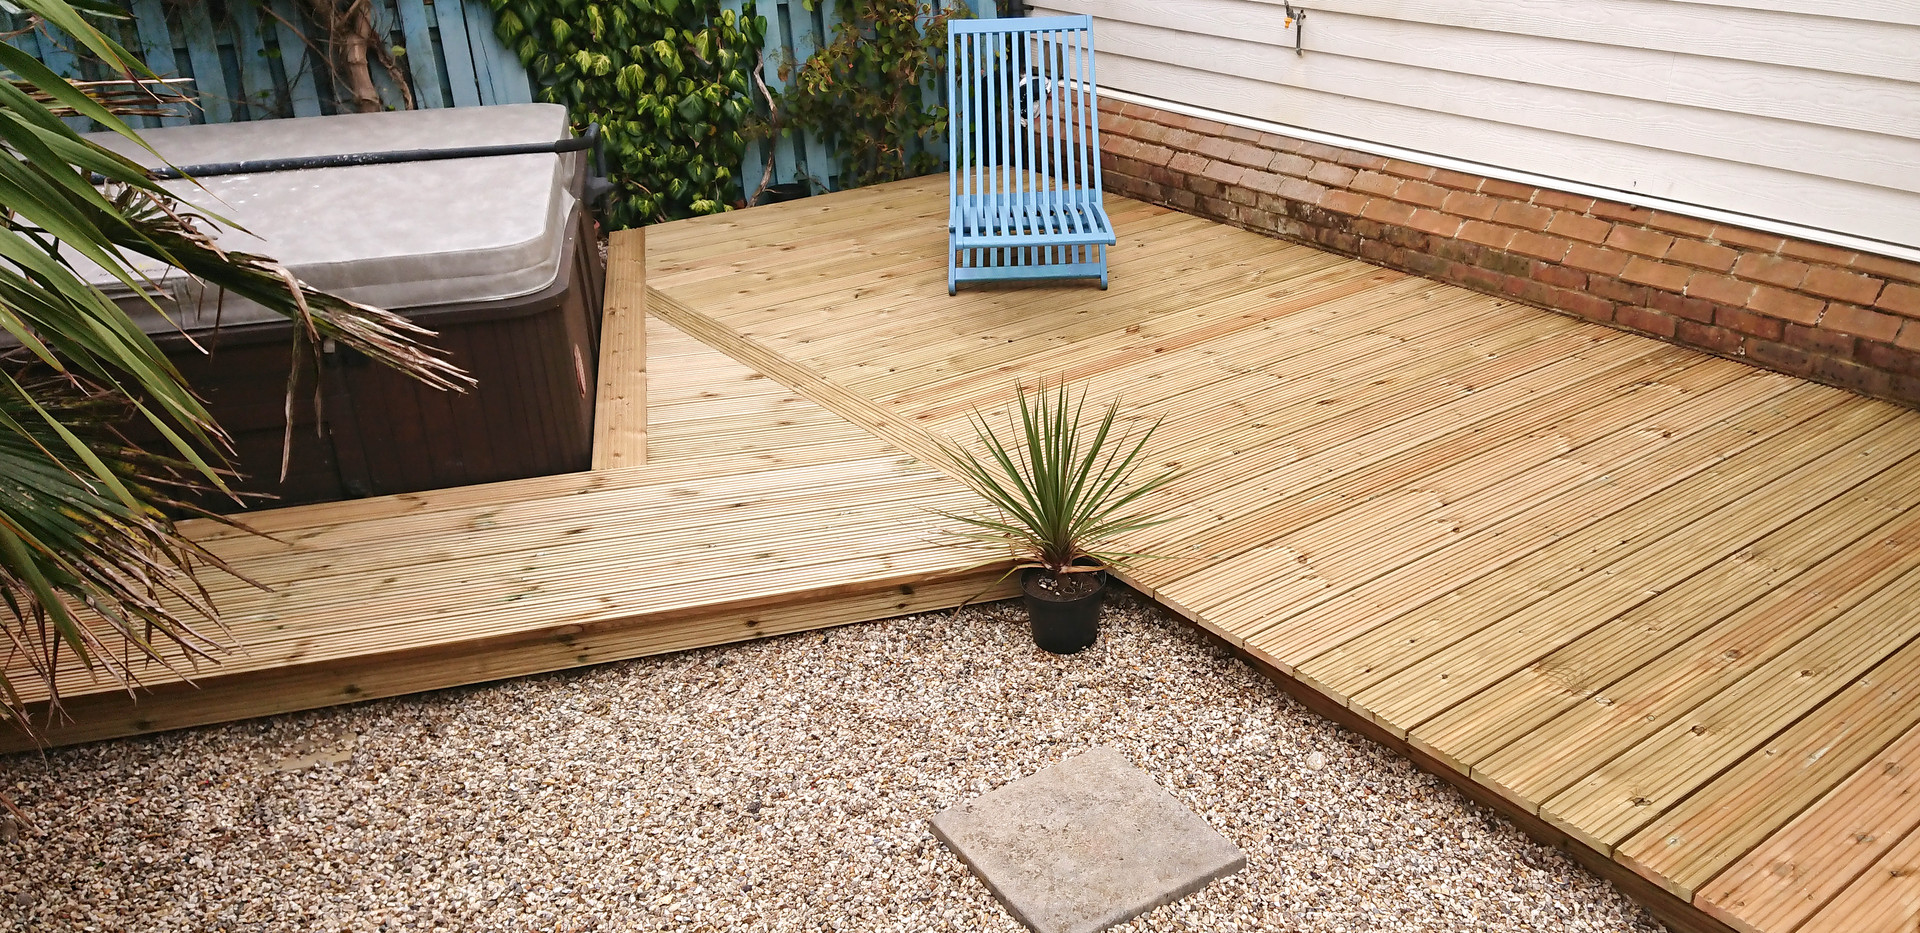 decking for hot tub in small back garden